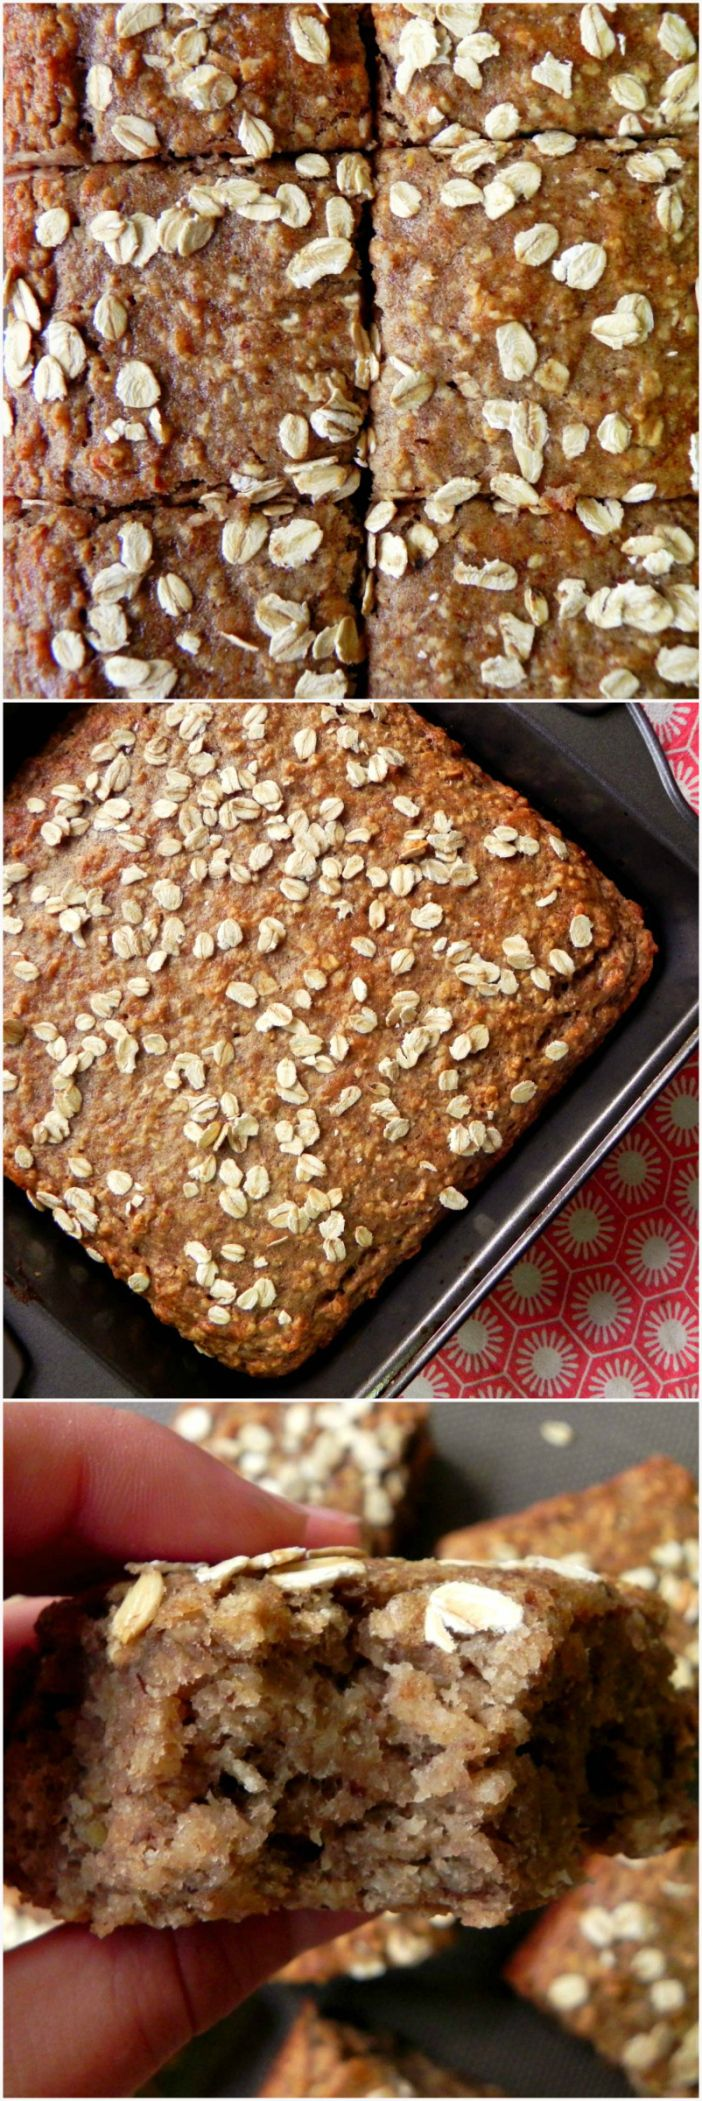 Banana & Oat Breakfast Cake with FIVE whole bananas - no butter and made with coconut oil! #HEALTHY #VEGAN - Ceara's Kitchen